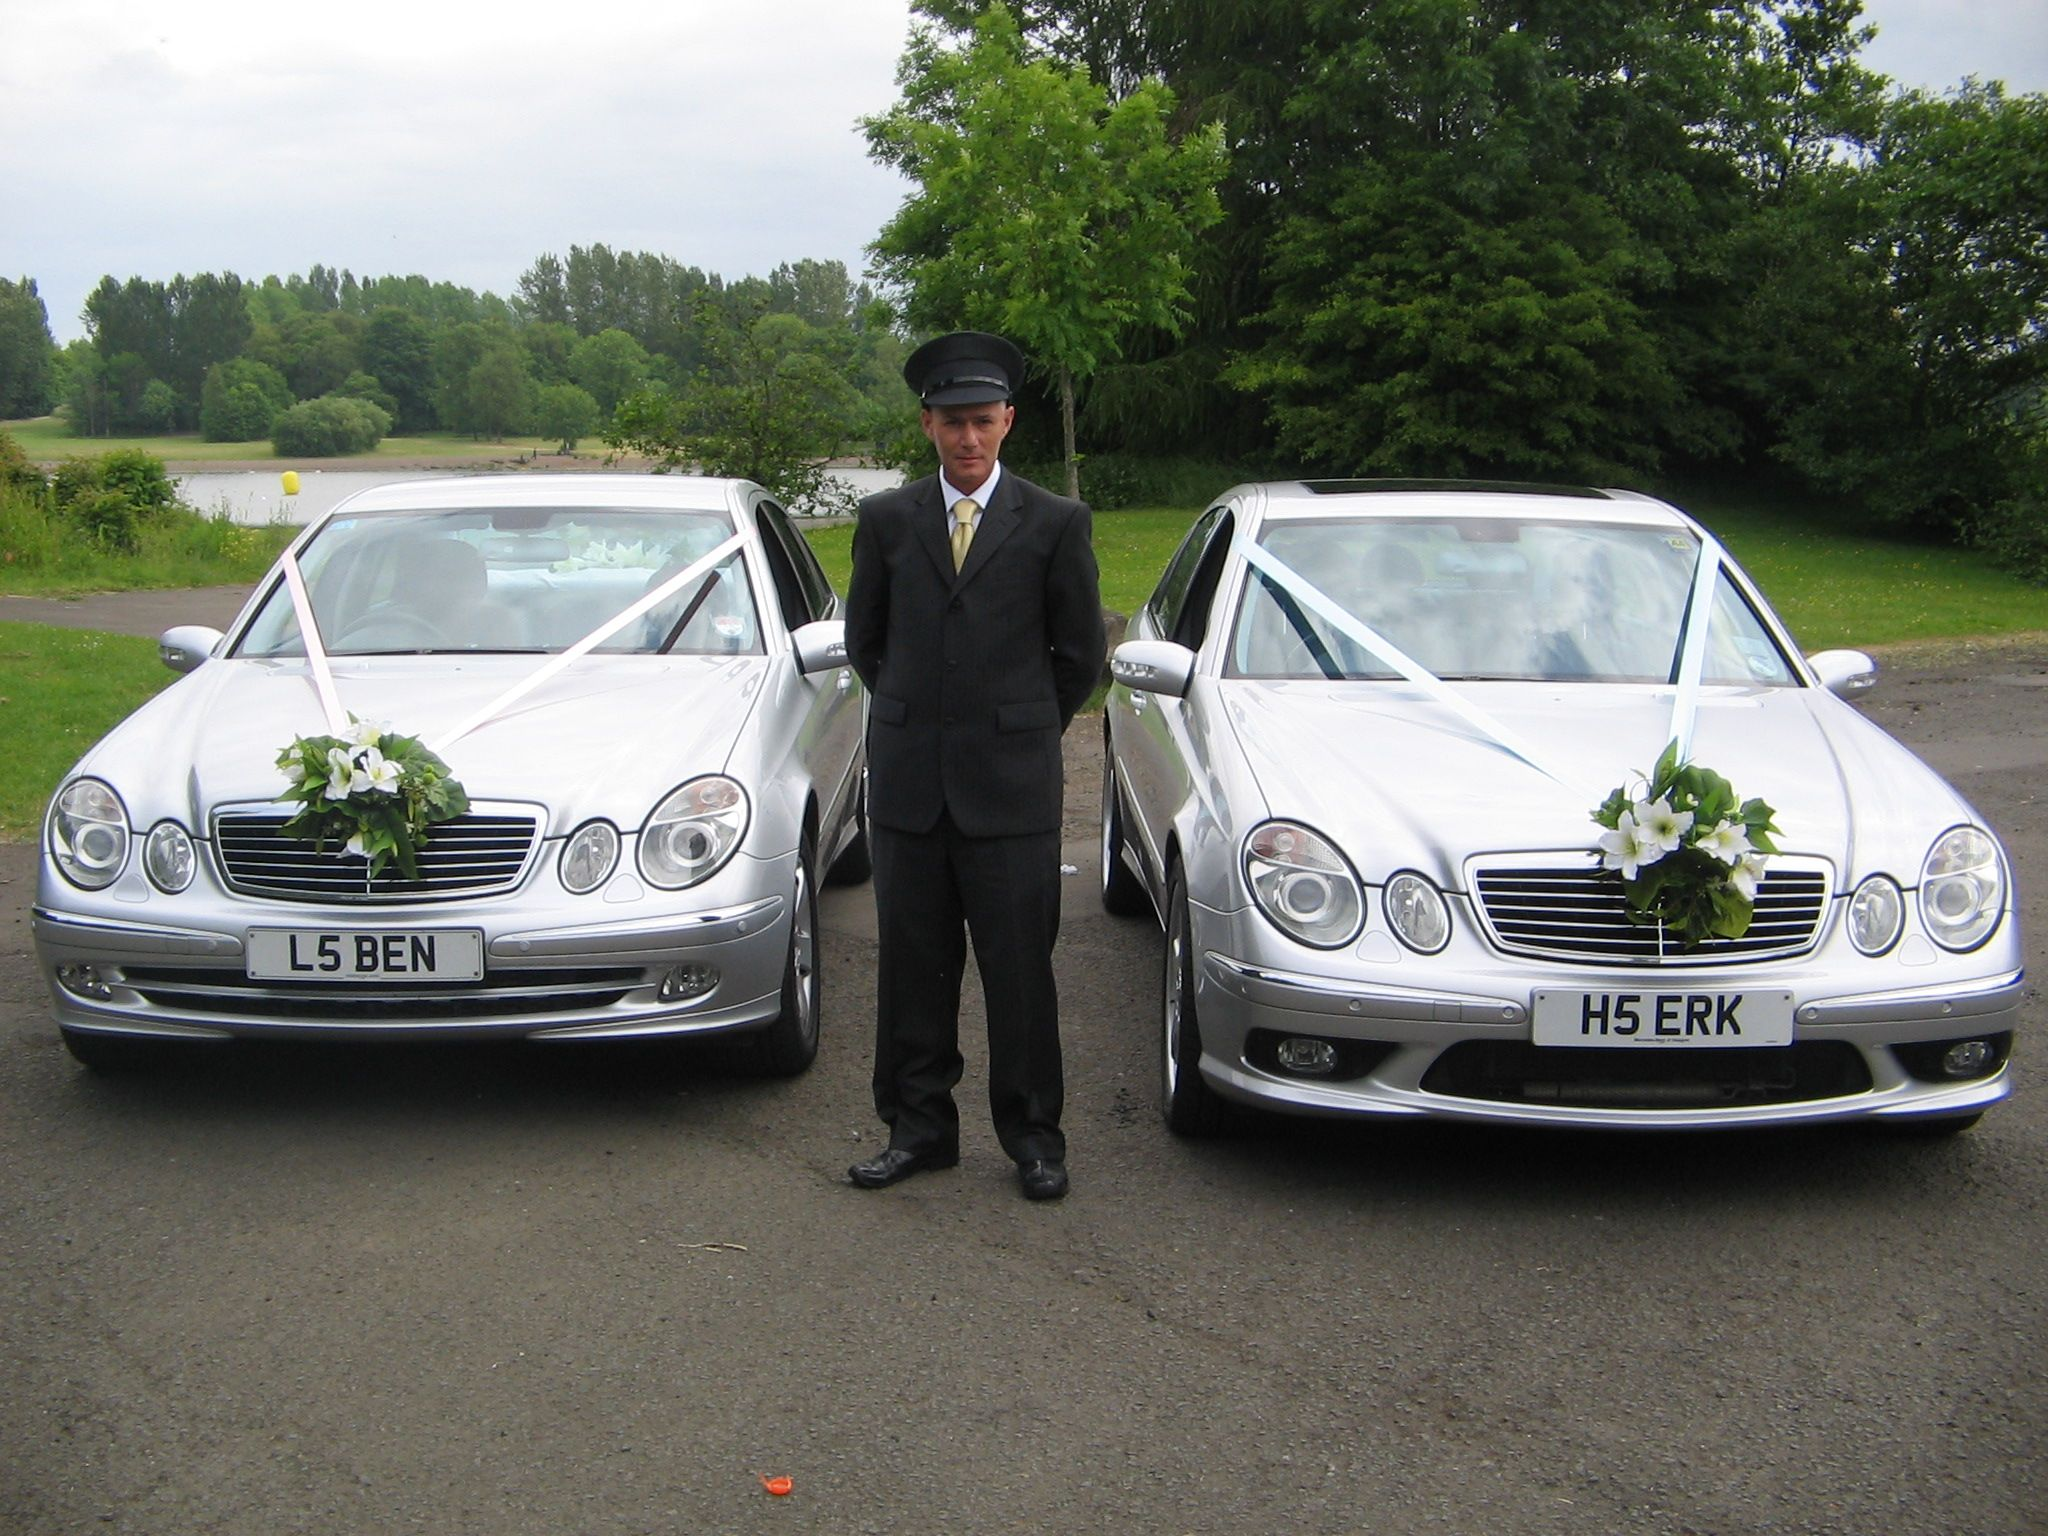 Wedding car decoration ideas  wedding car decorations ideas For more great ideas and information